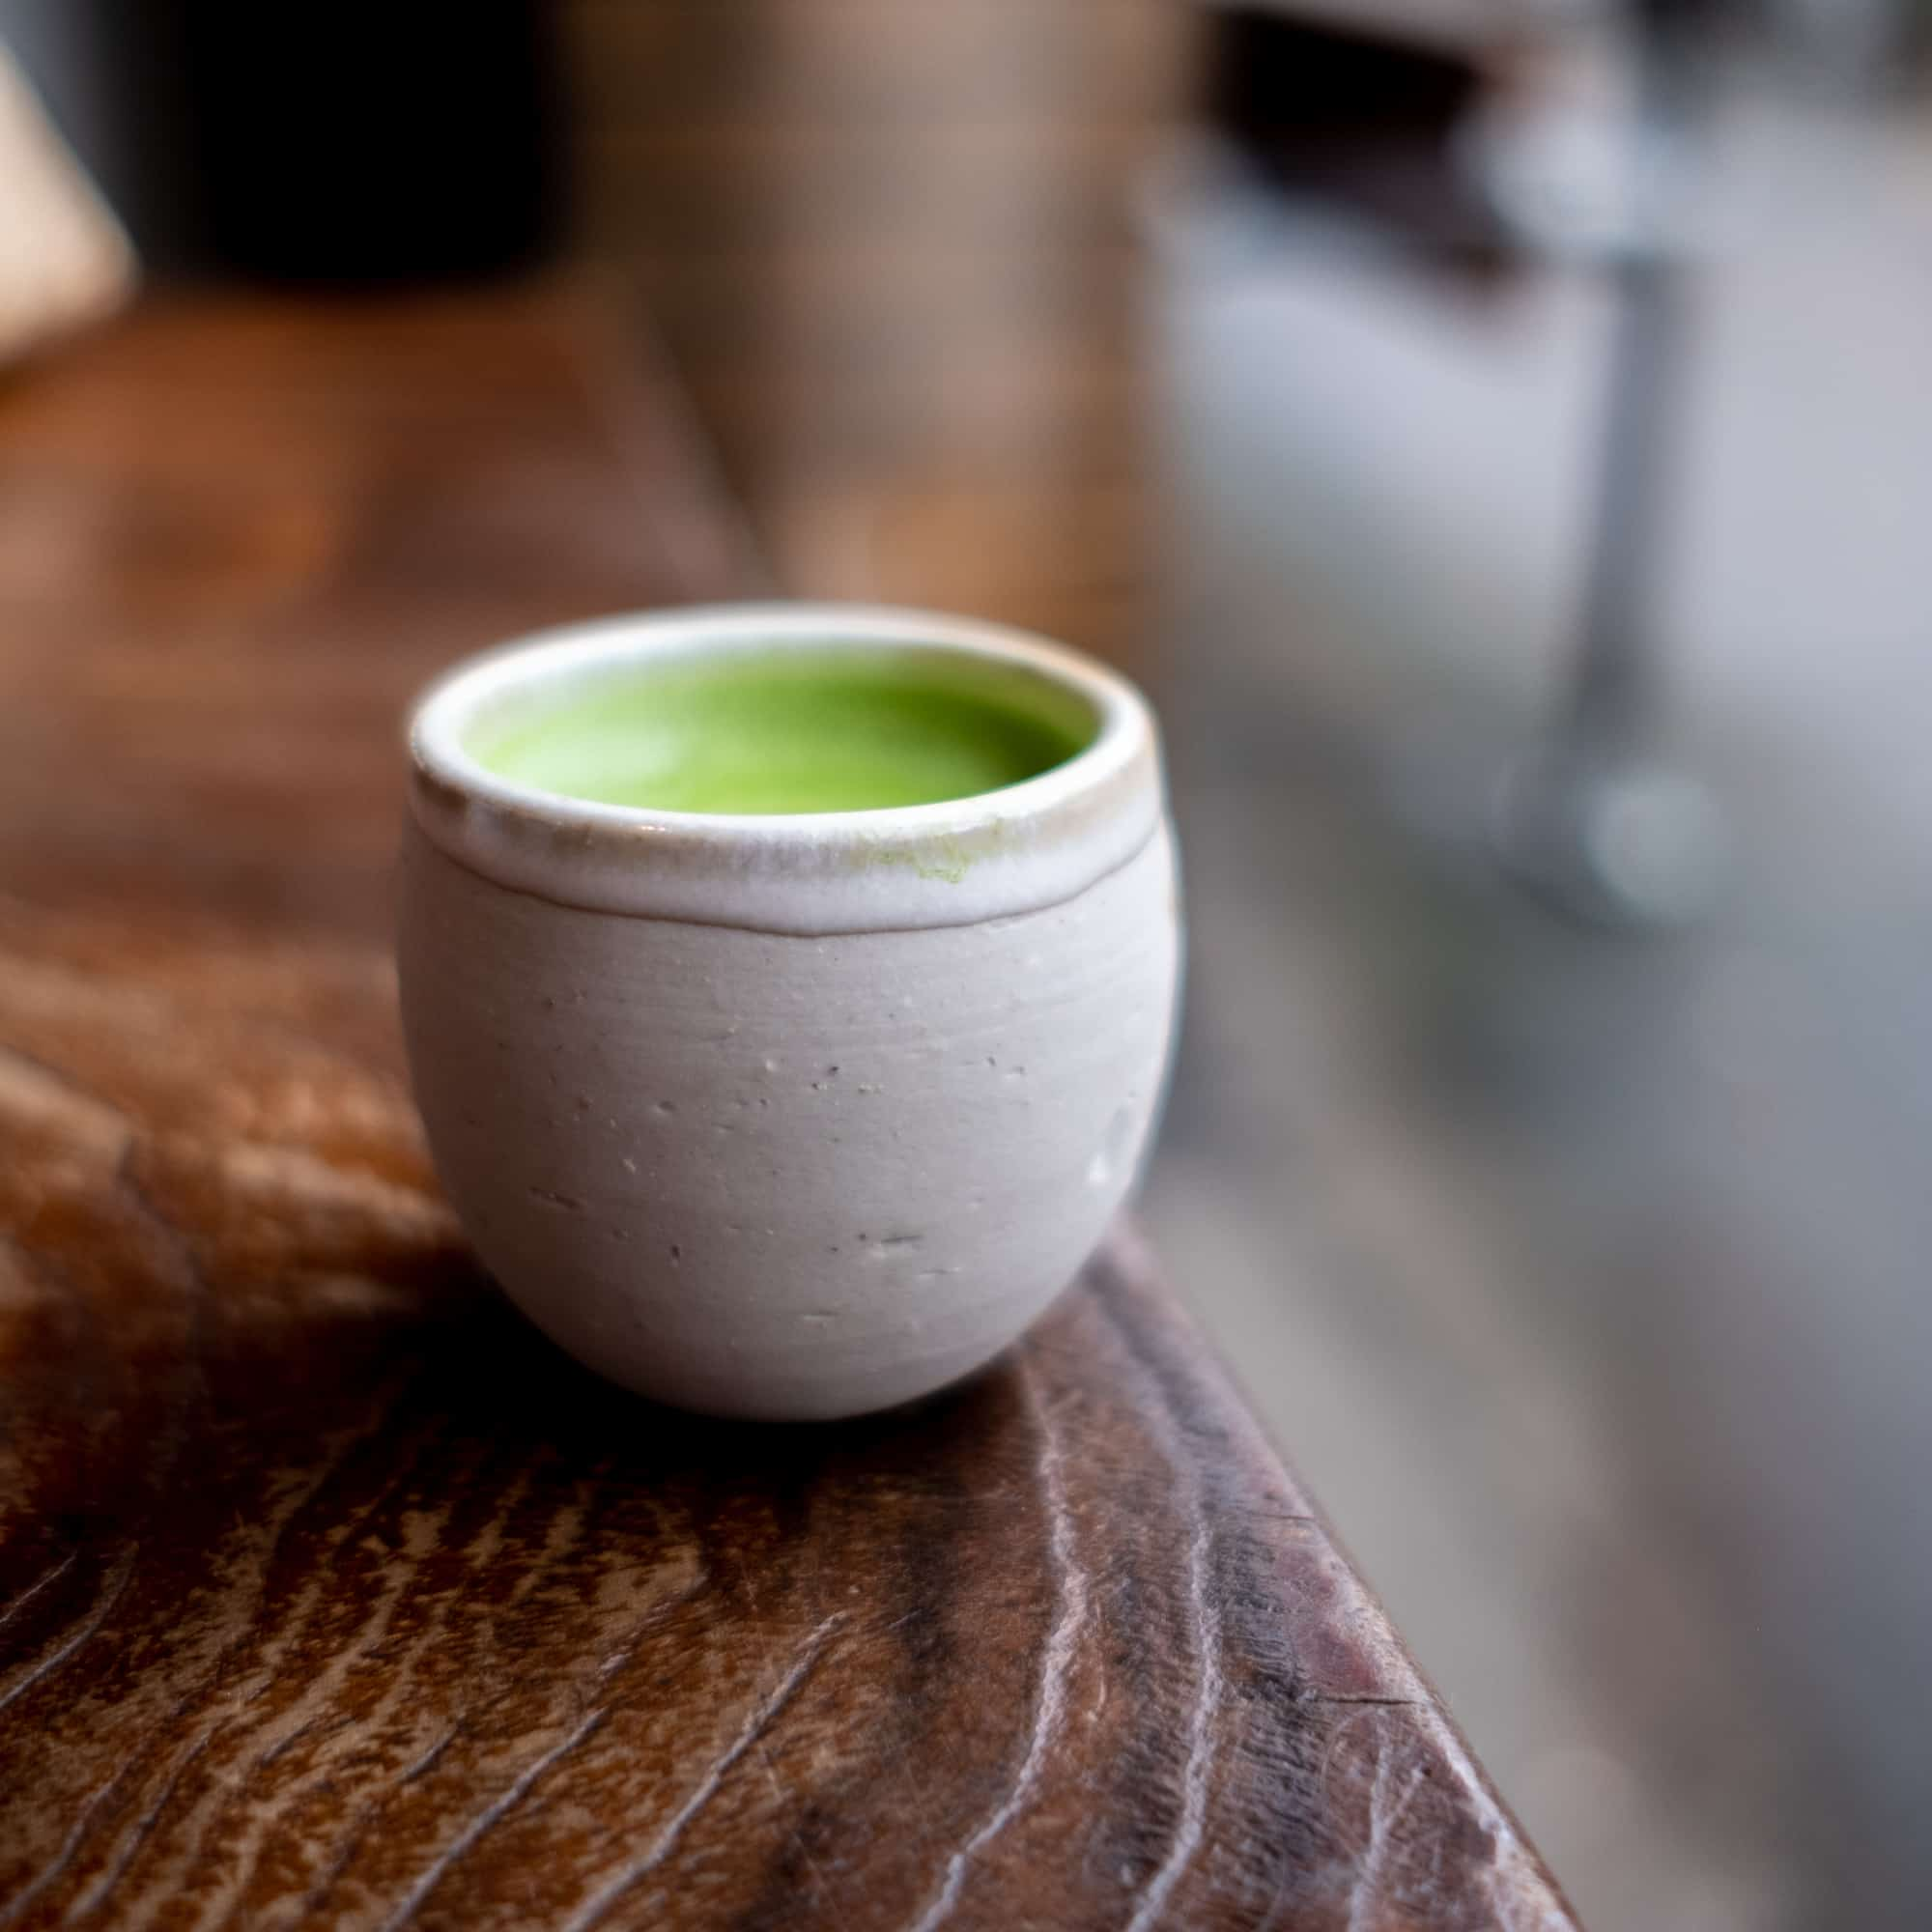 Matcha on table